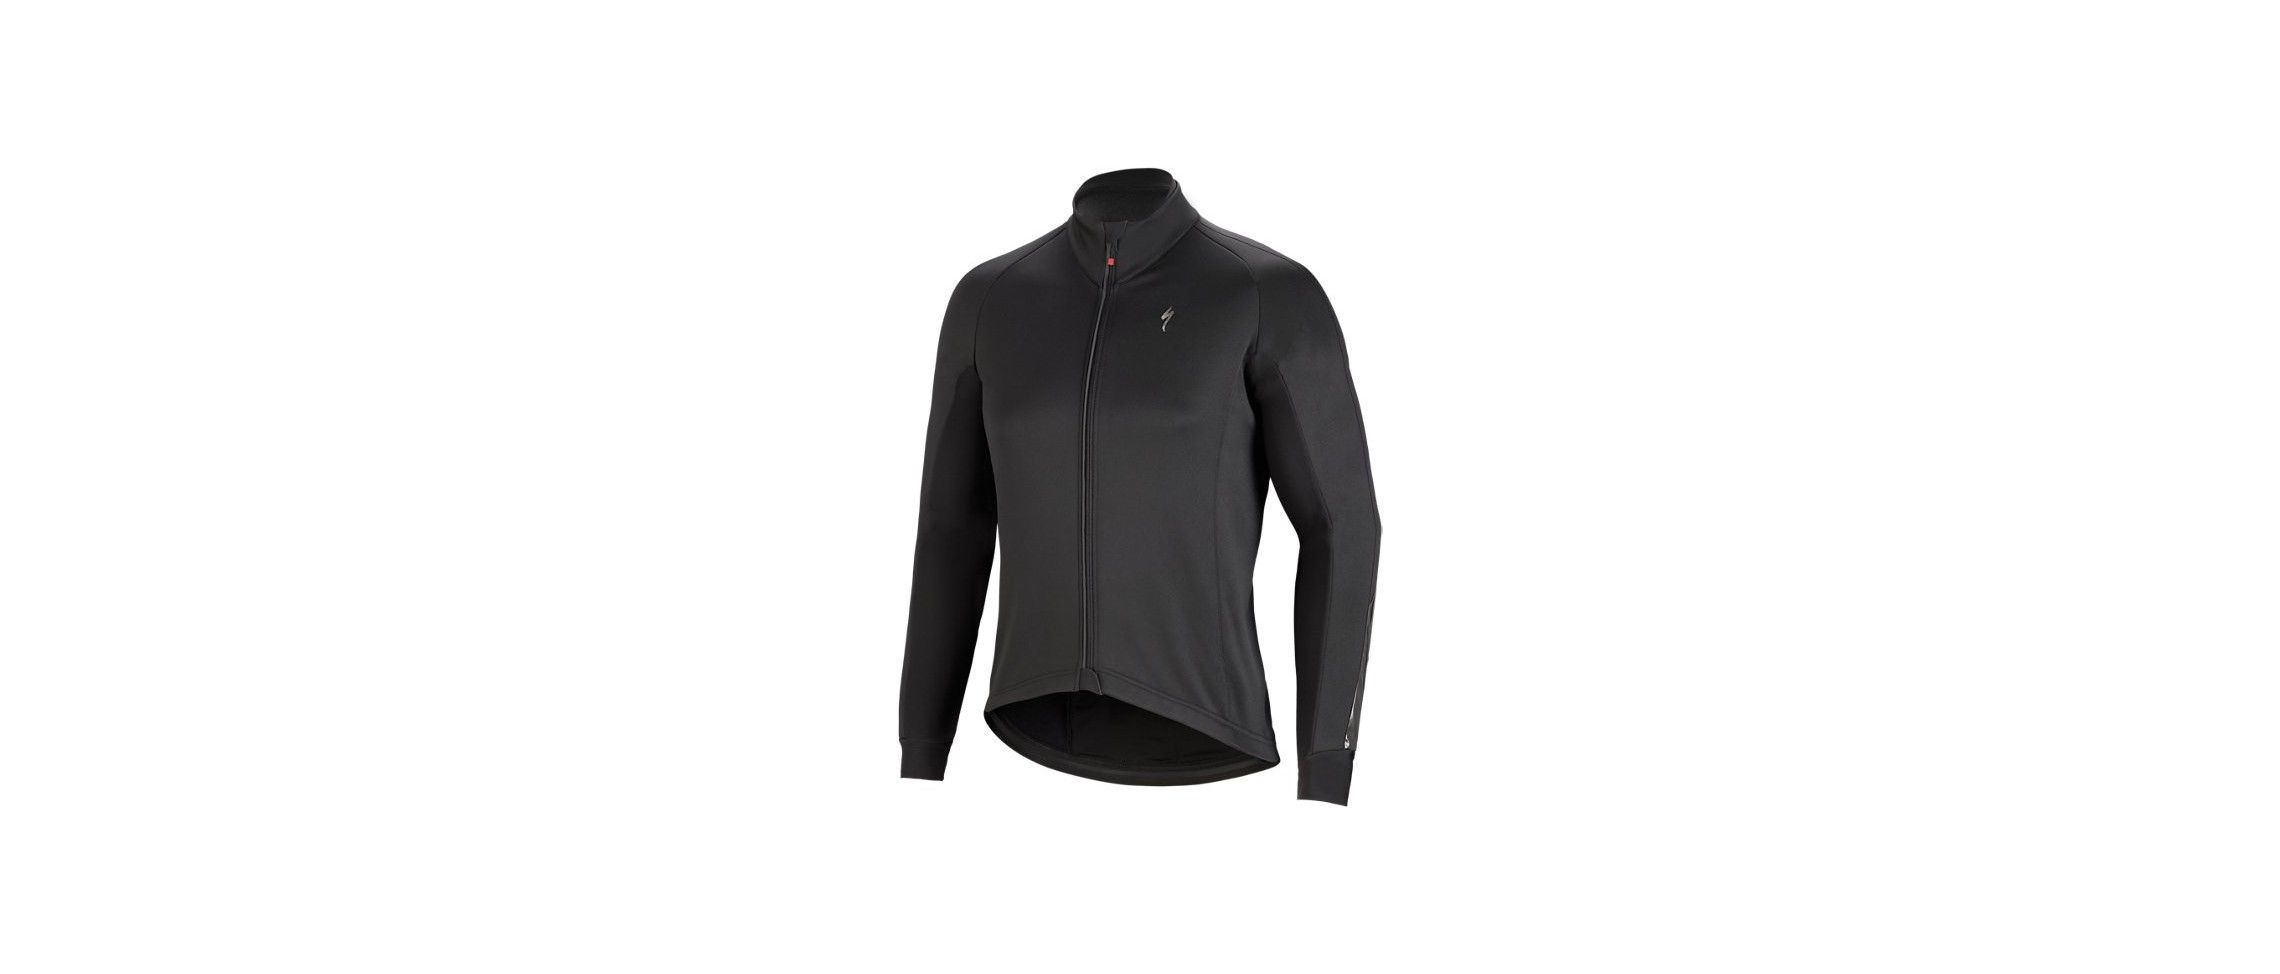 ELEMENT RBX COMP HV JACKET BLK SCRB REFL M